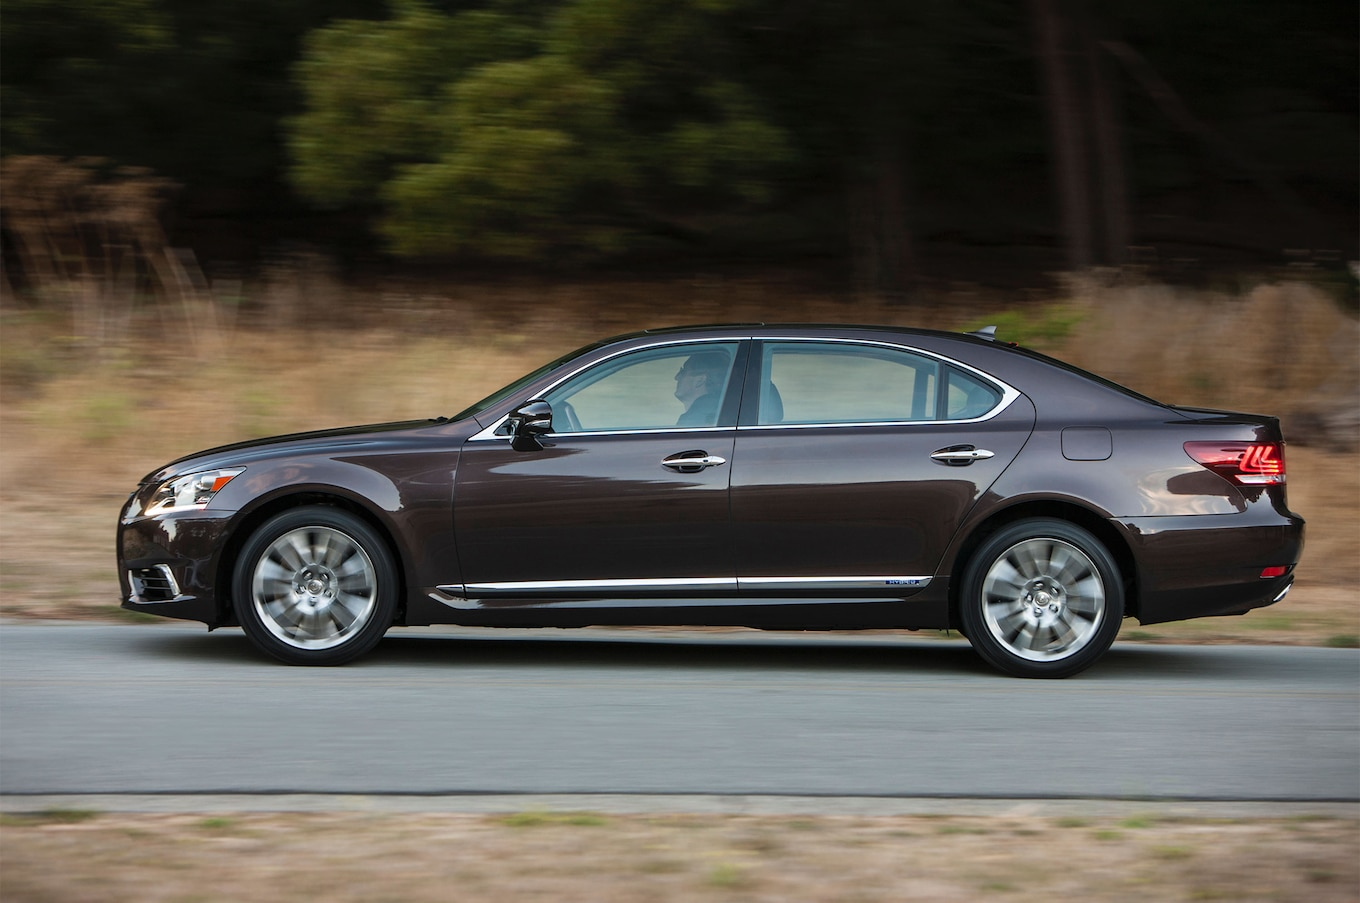 2016 Lexus LS600h Reviews and Rating